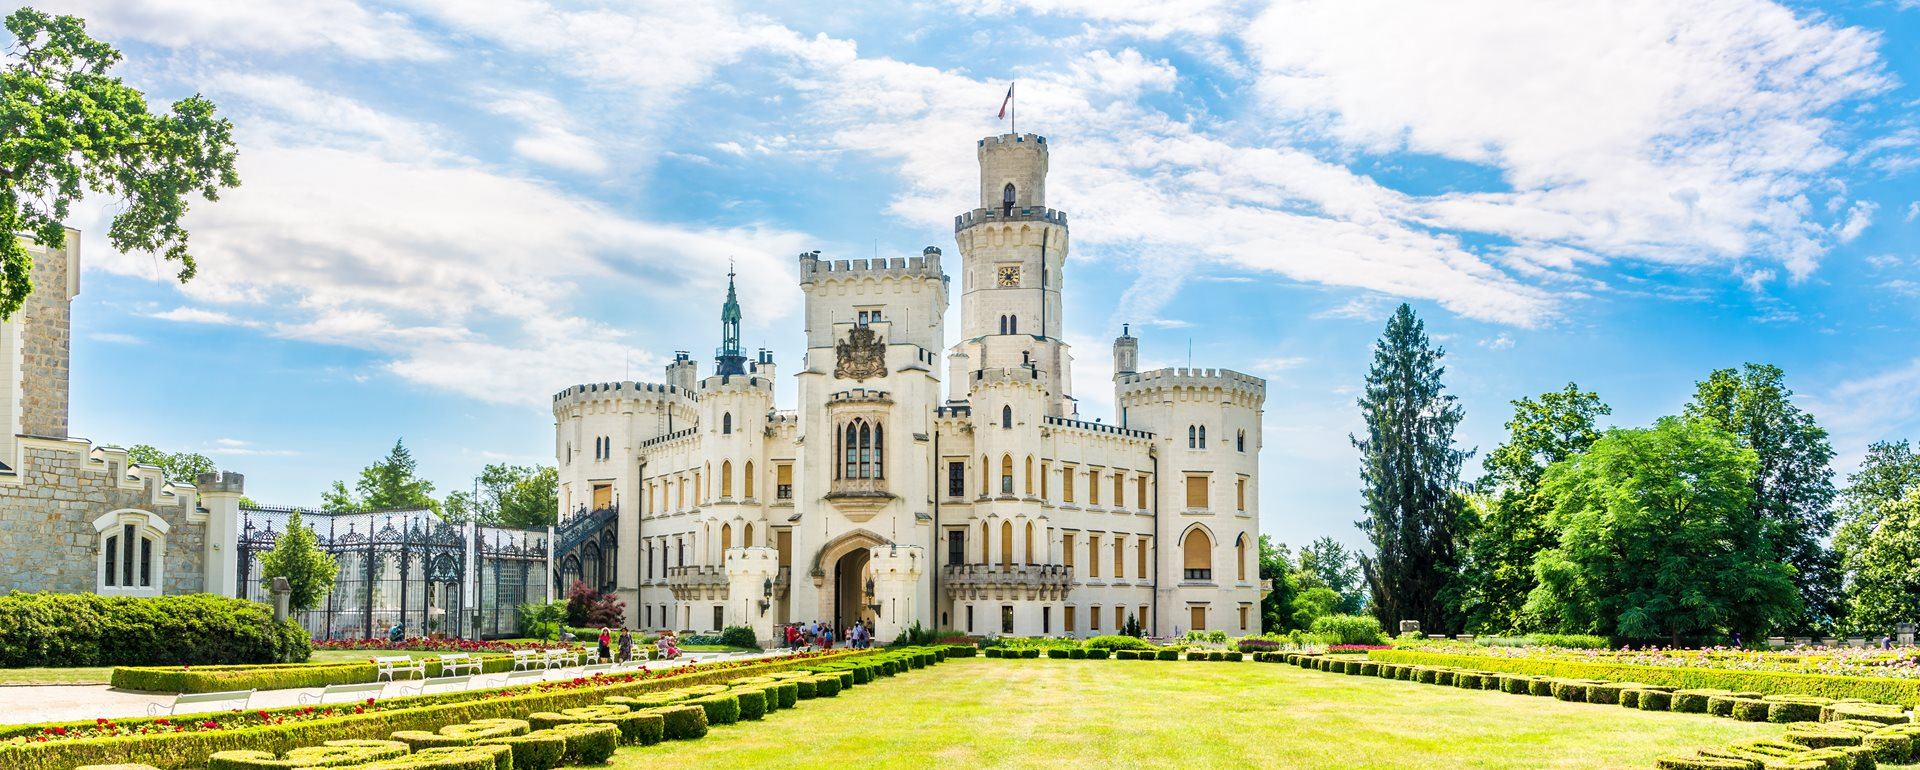 Fall in Love with the Fairy Tale Castles of South Bohemia, Czech Republic